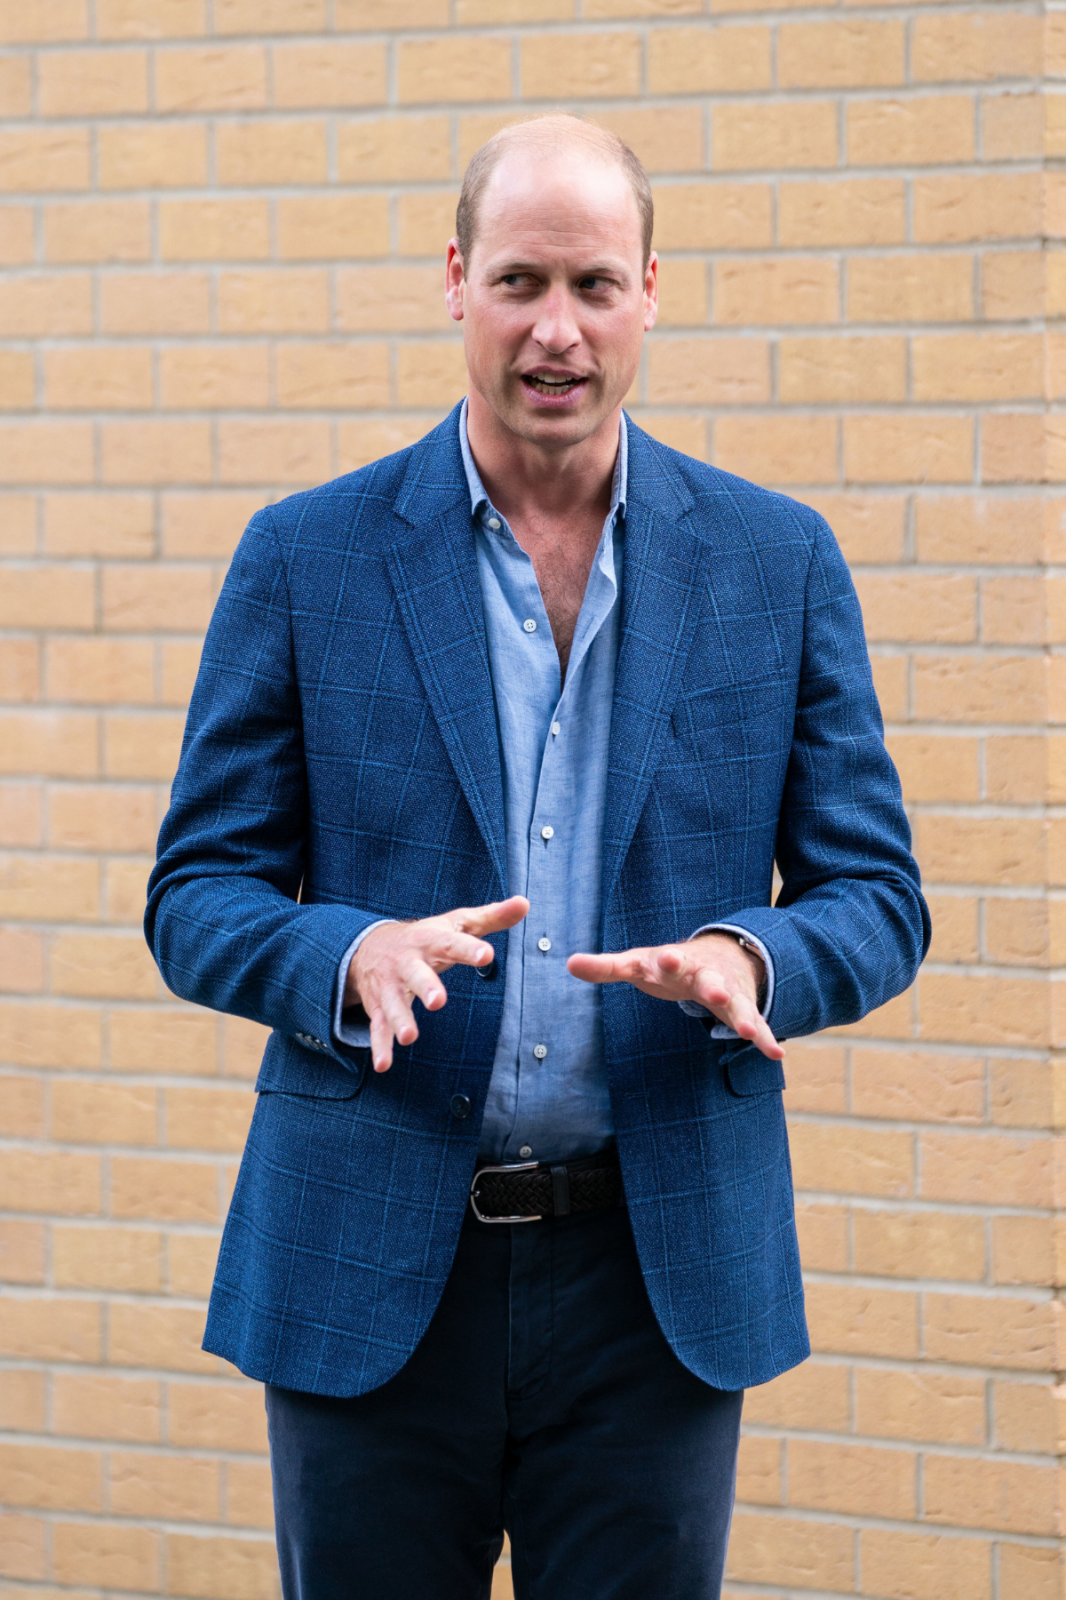 Prince William's shirt stole the show